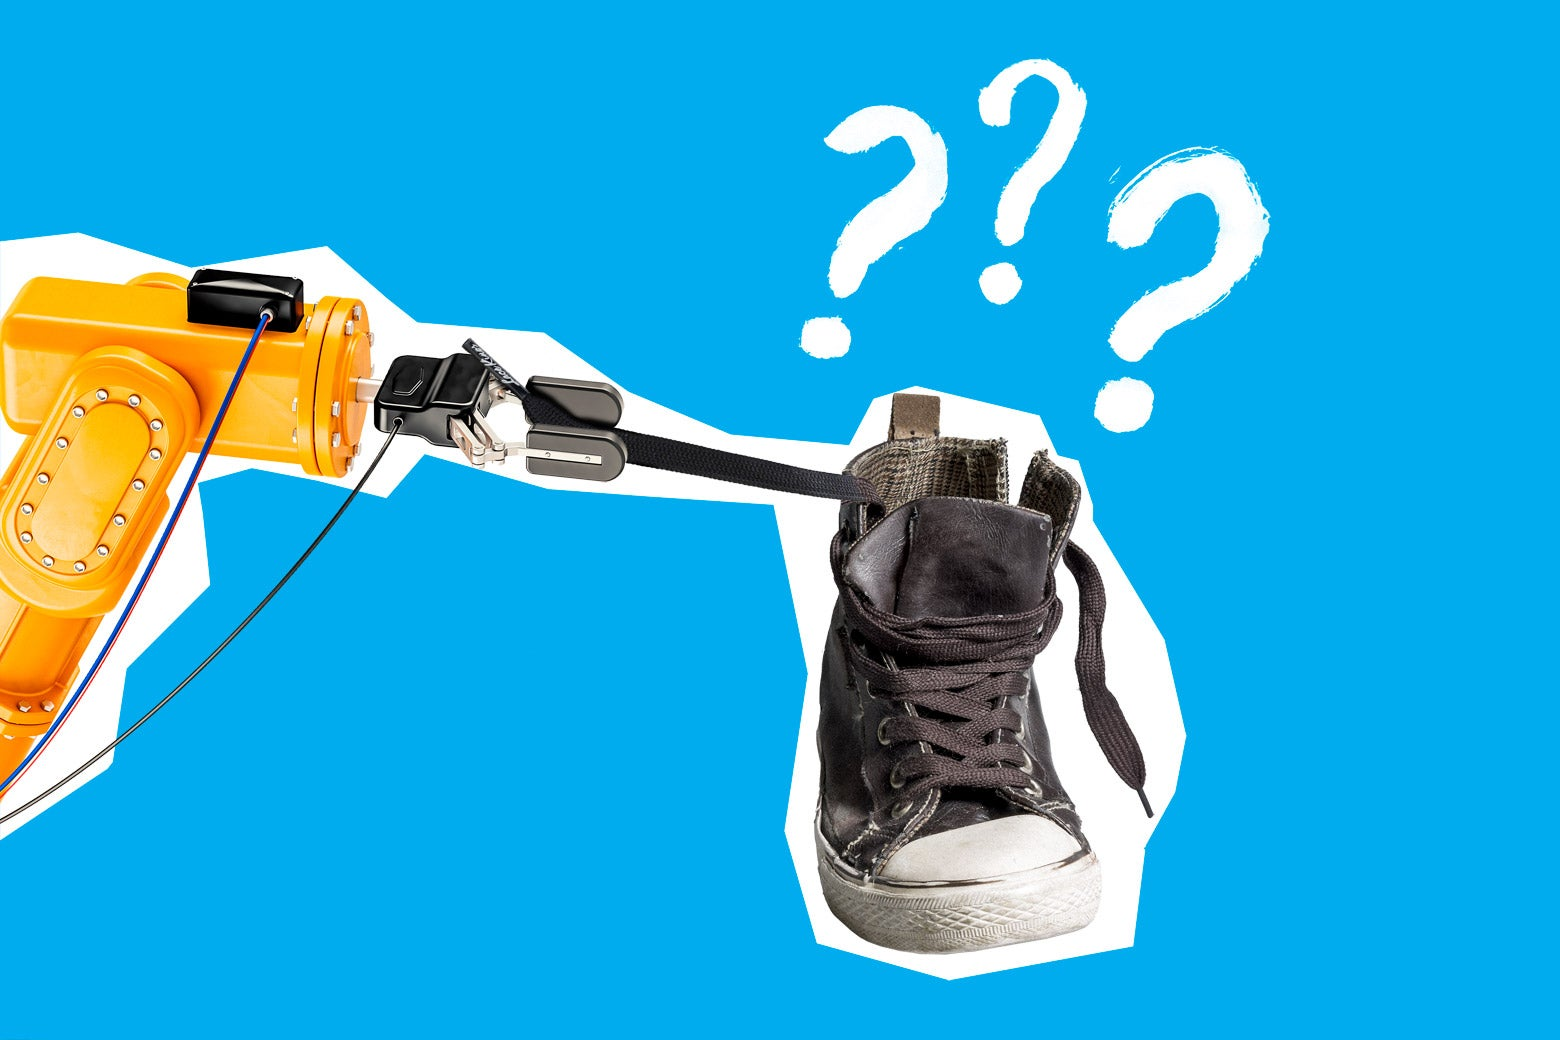 A robot trying to tie a shoelace on a shoe with question marks around it.